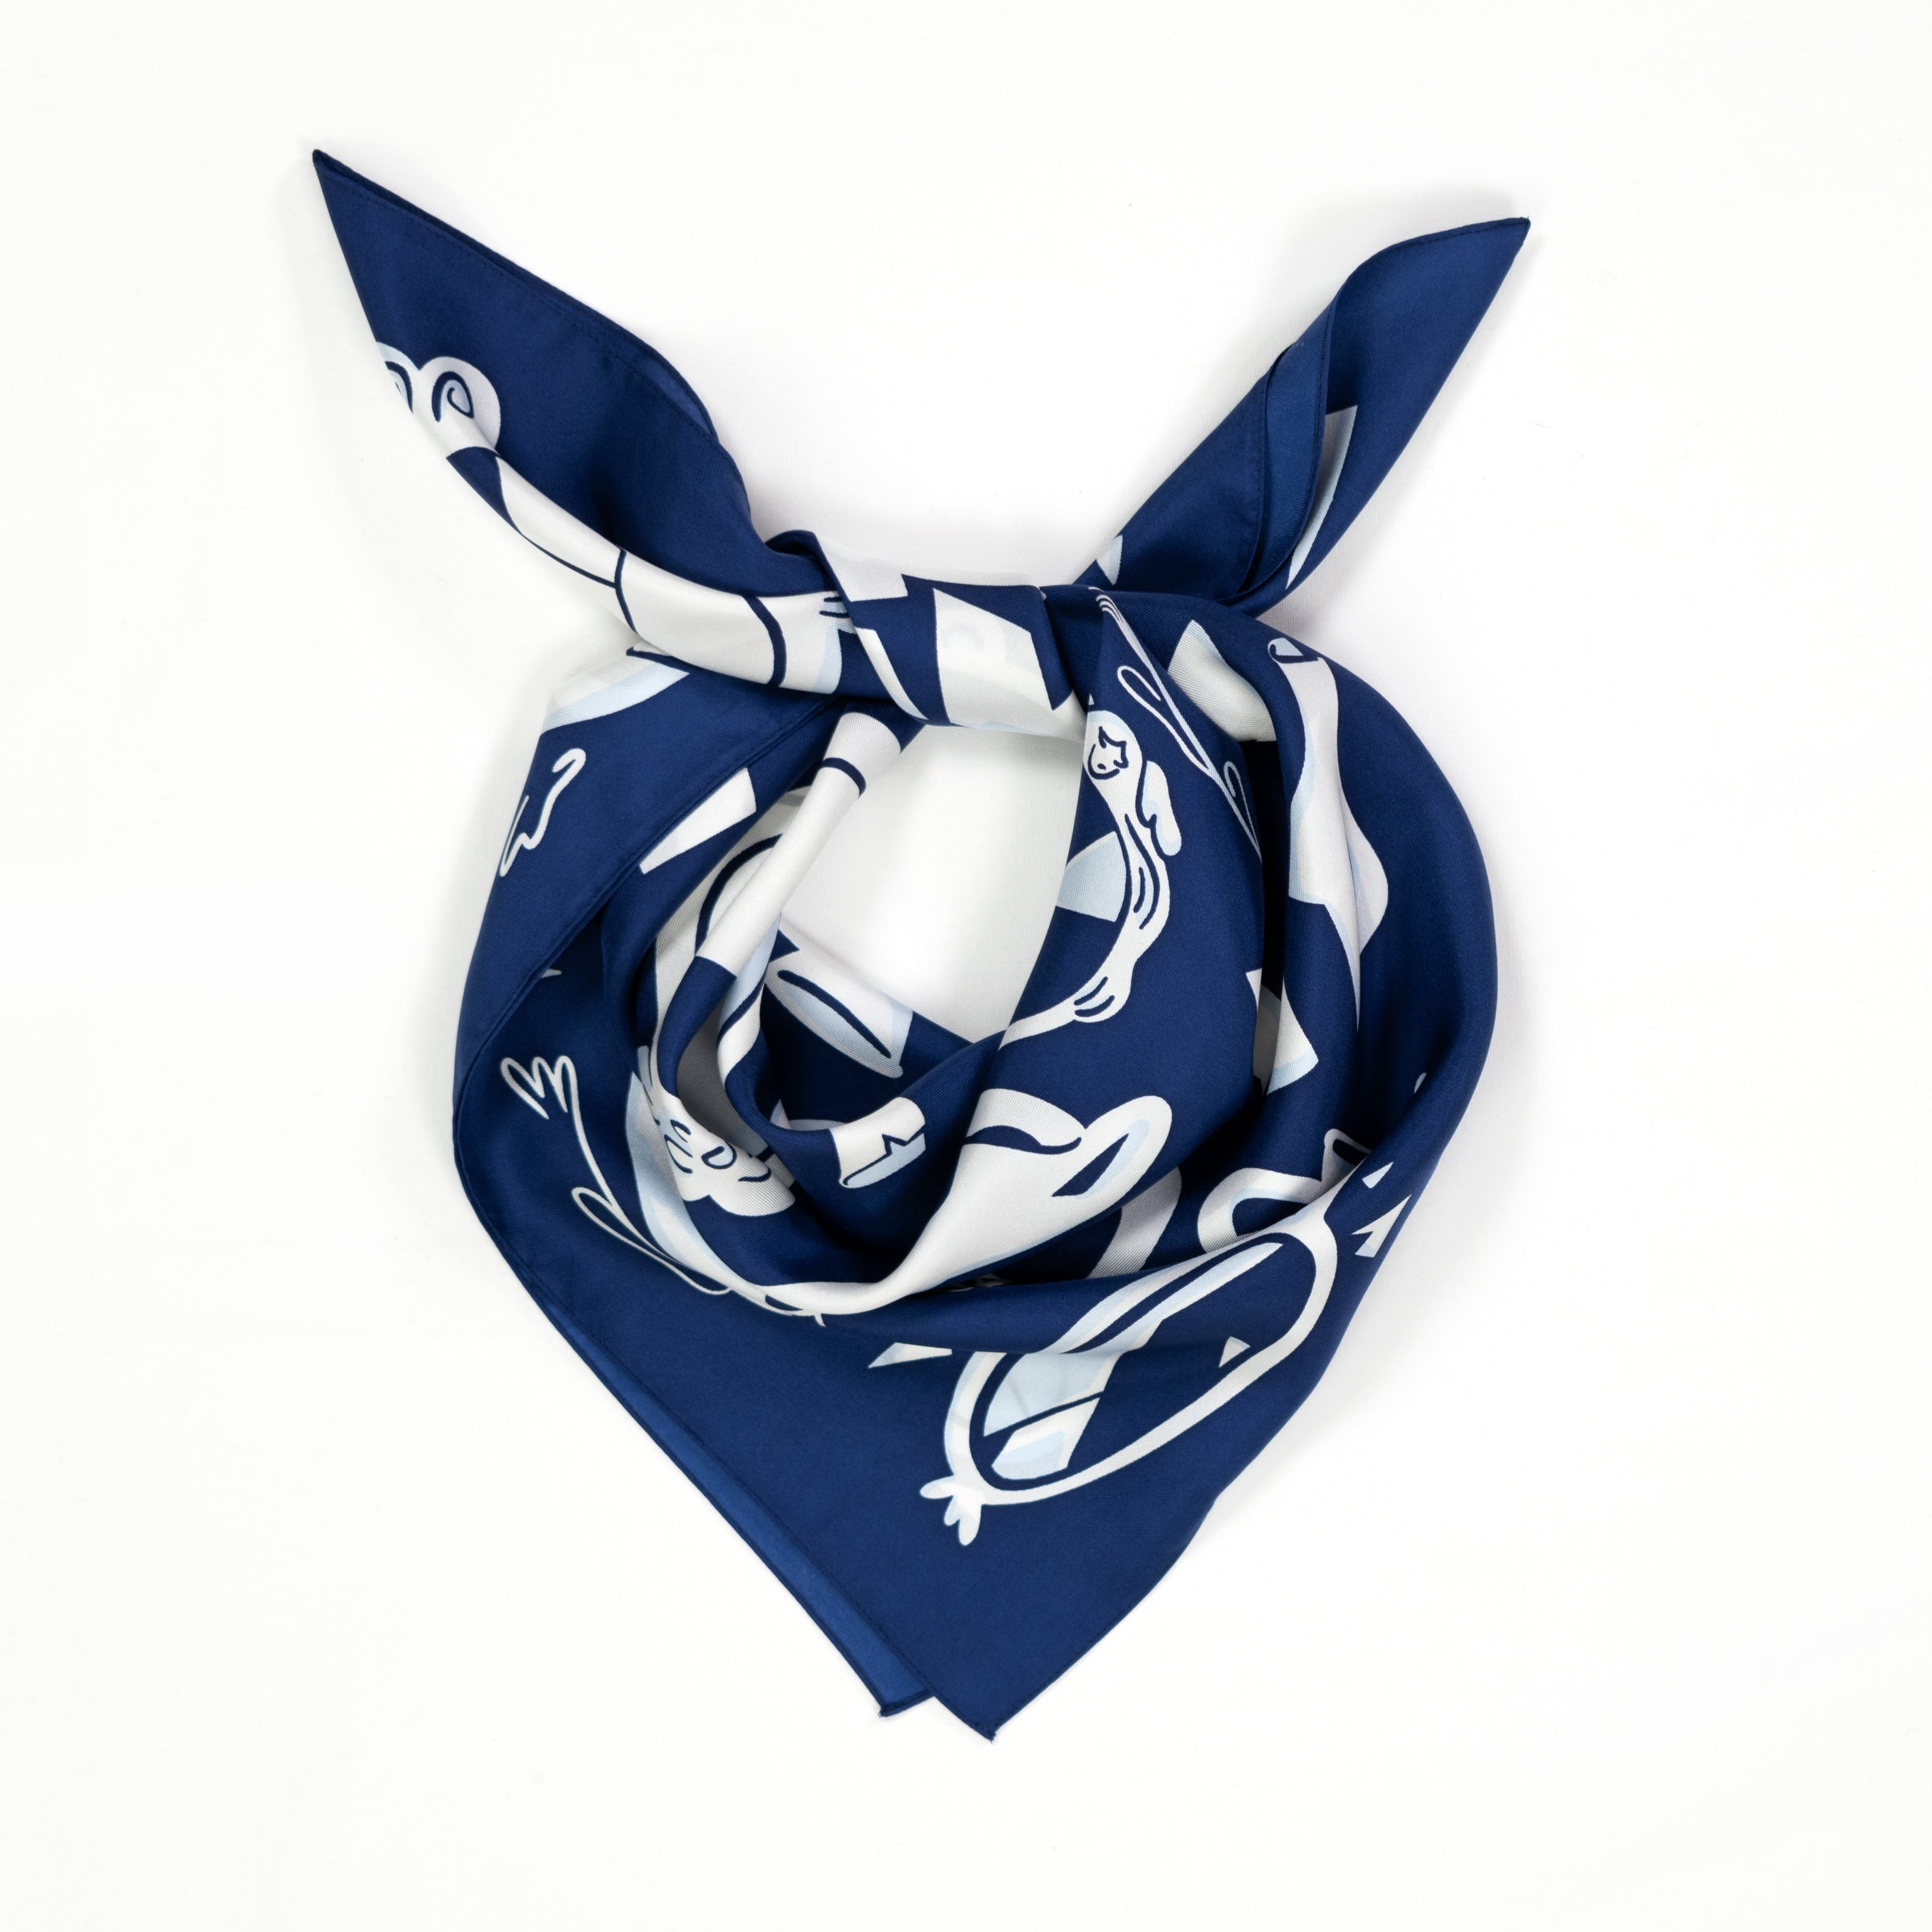 Broken Silk Scarf